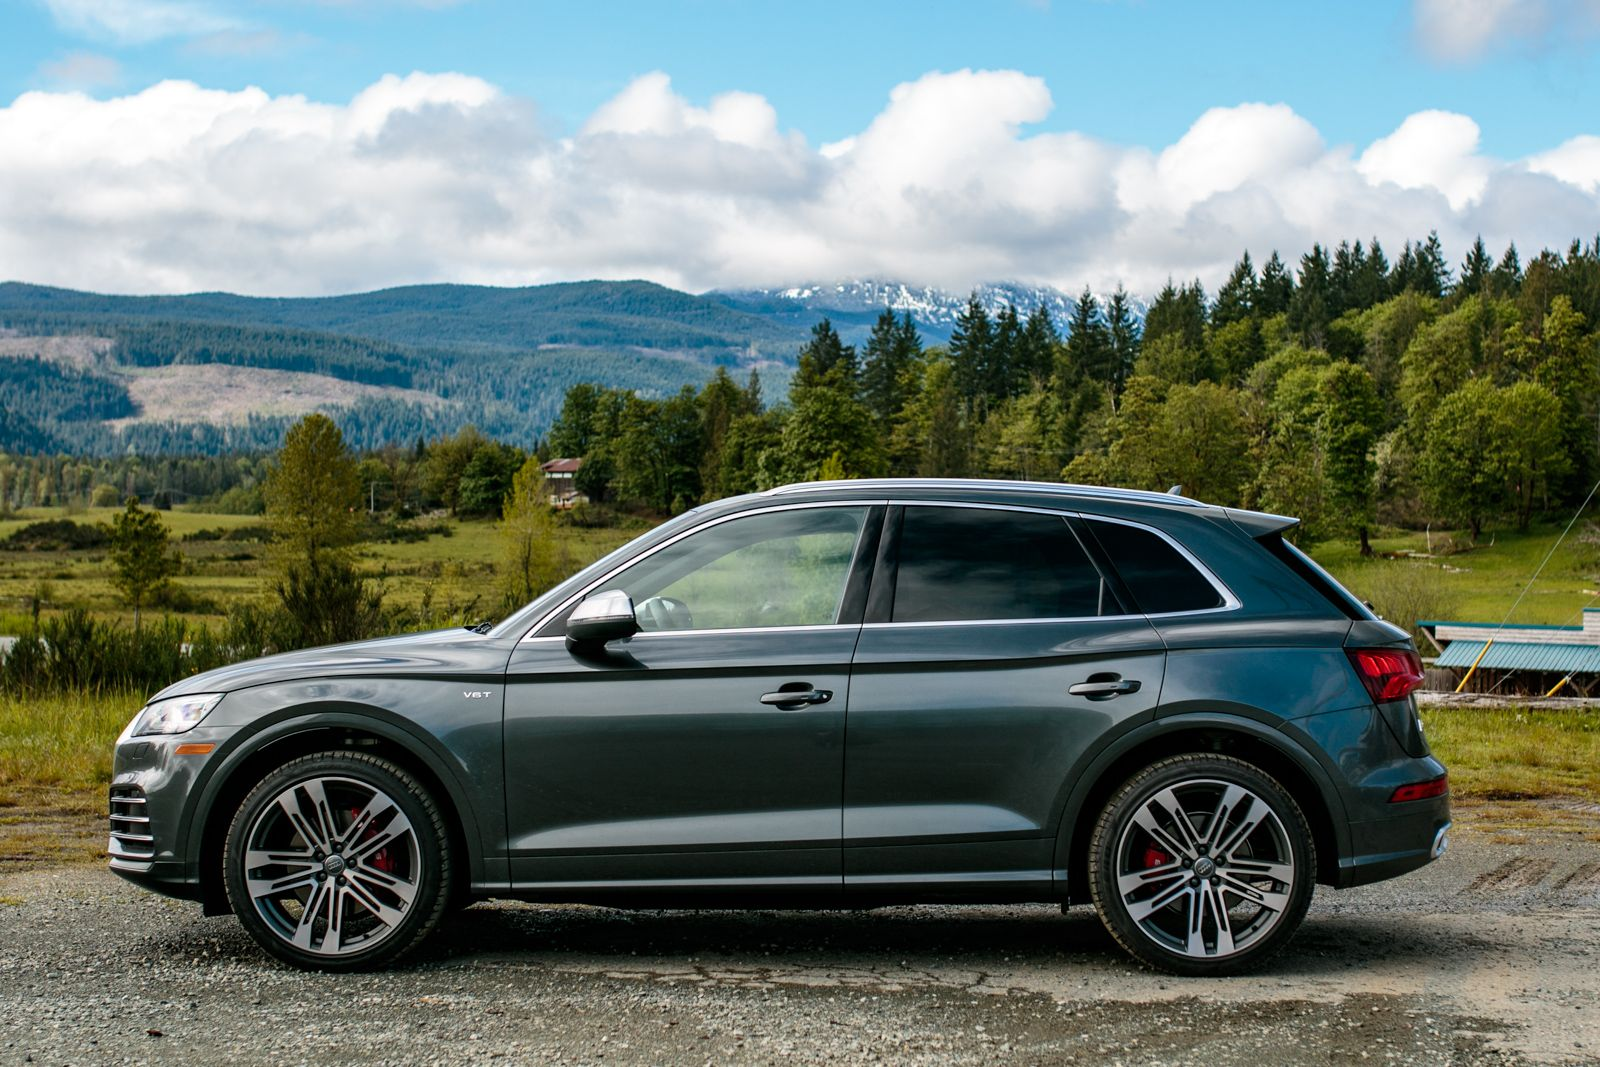 2018 Audi Sq5 Colors Release Date Redesign Price A Hotter Model Of The Luxurious Q5 Is Just All Around Corner Following Era Will Come With Several